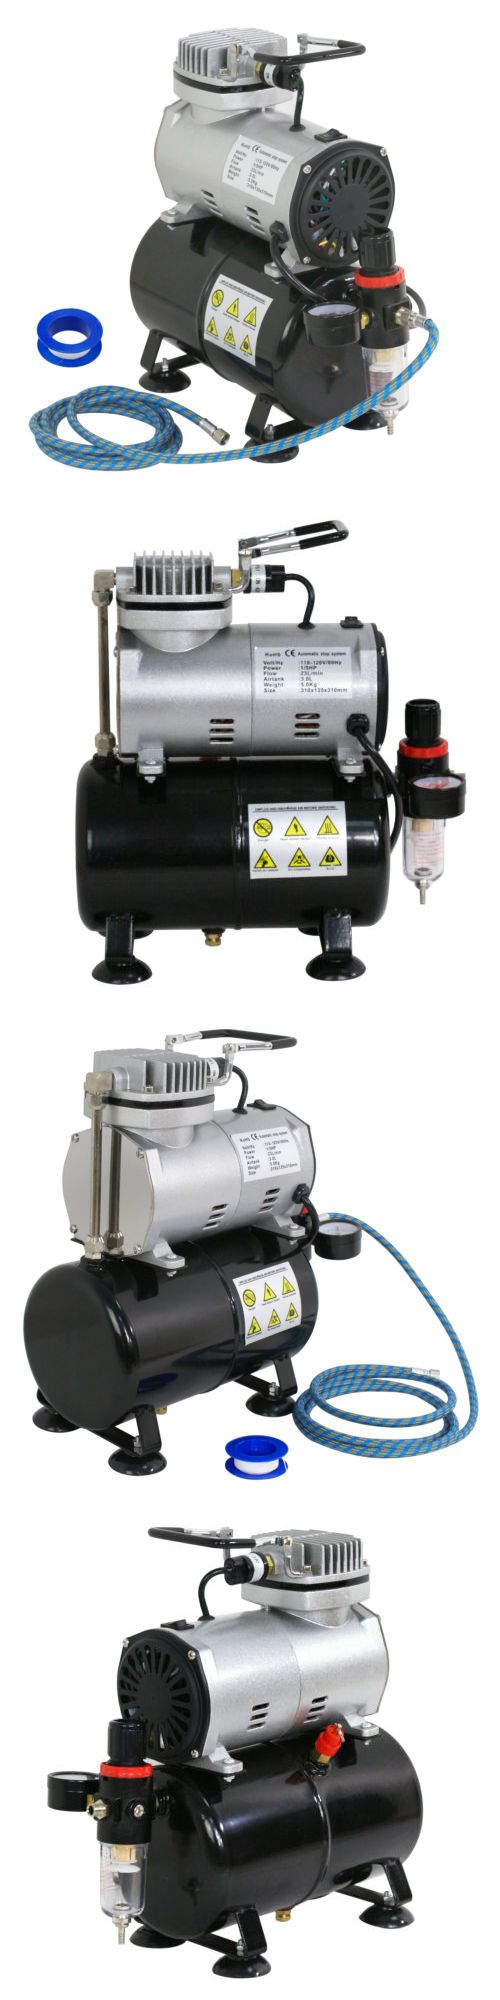 Details about Airbrush Air Tank Compressor Regulator